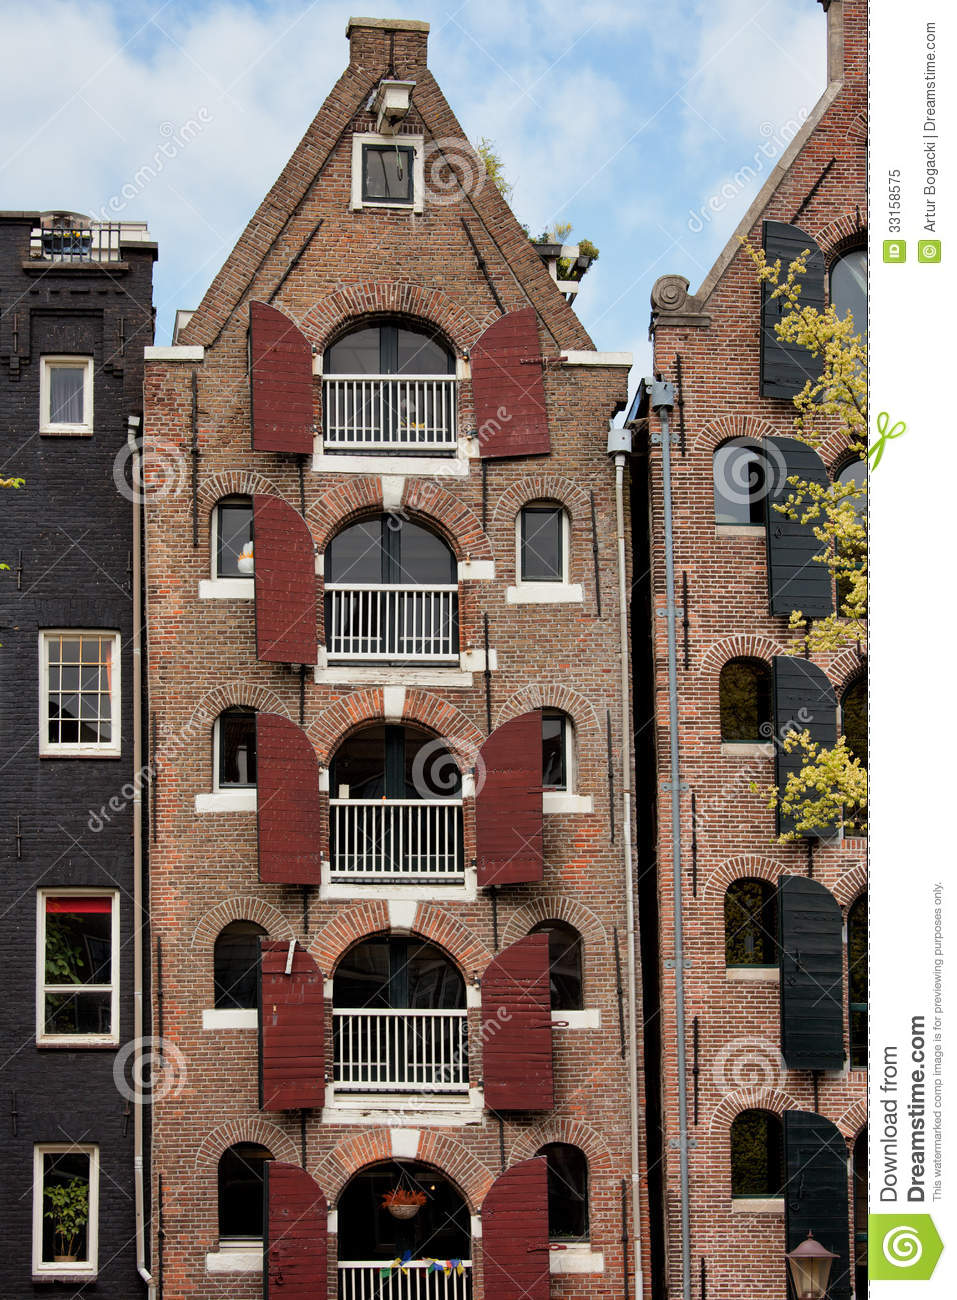 Old Apartment Building In Amsterdam Royalty Free Stock Photo - Image ...